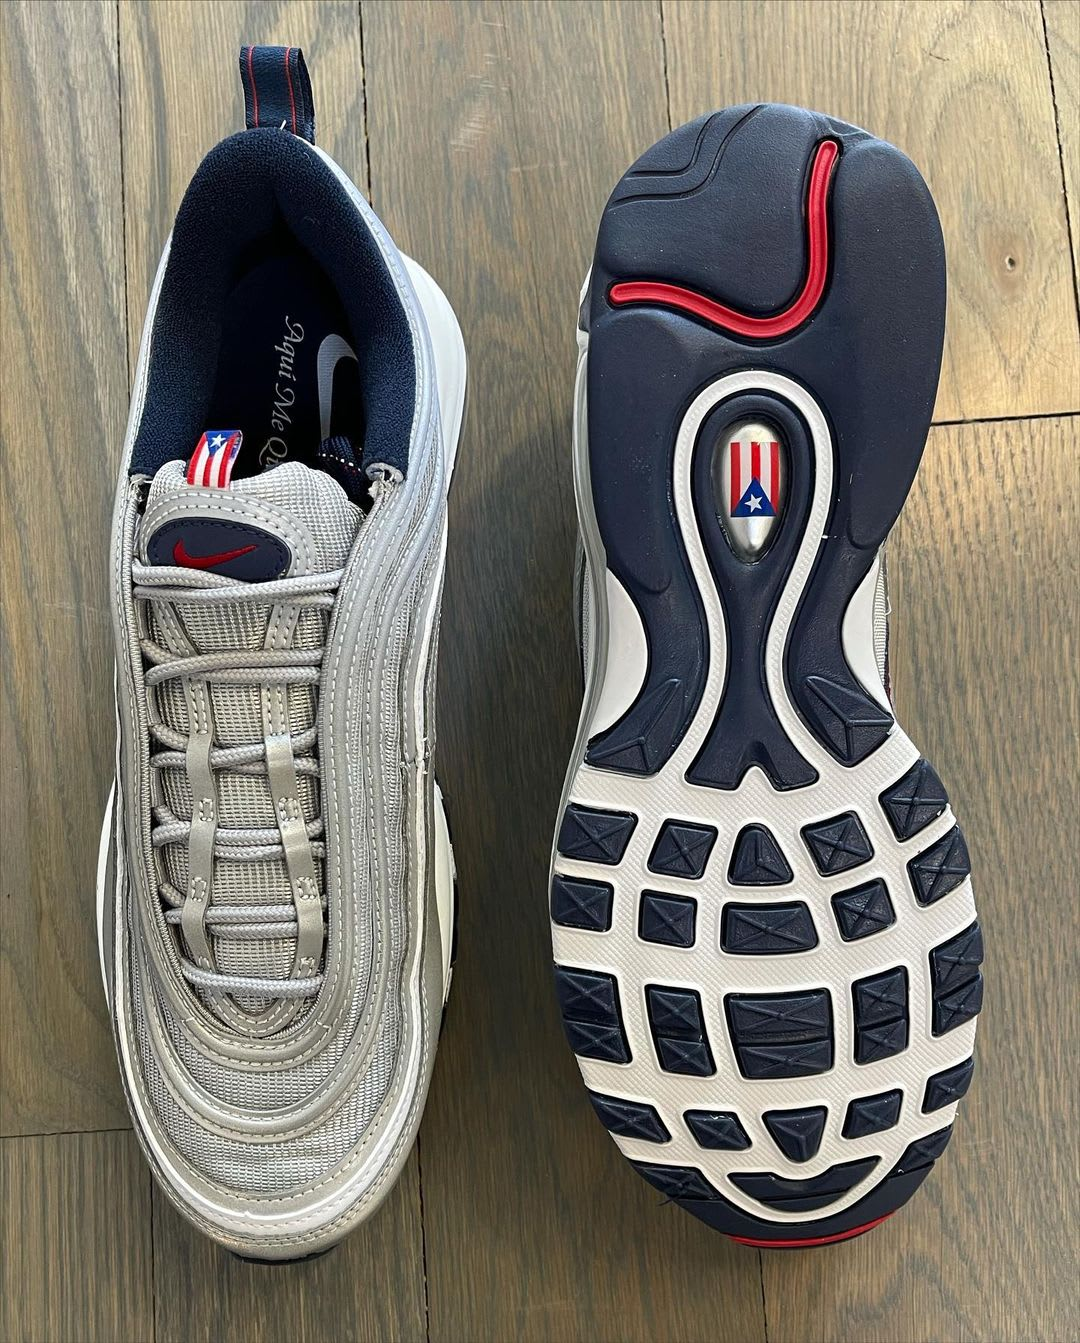 Nike Air Max 97 OG SP 'Puerto Rico' DH2319-001 (Top and Sole)